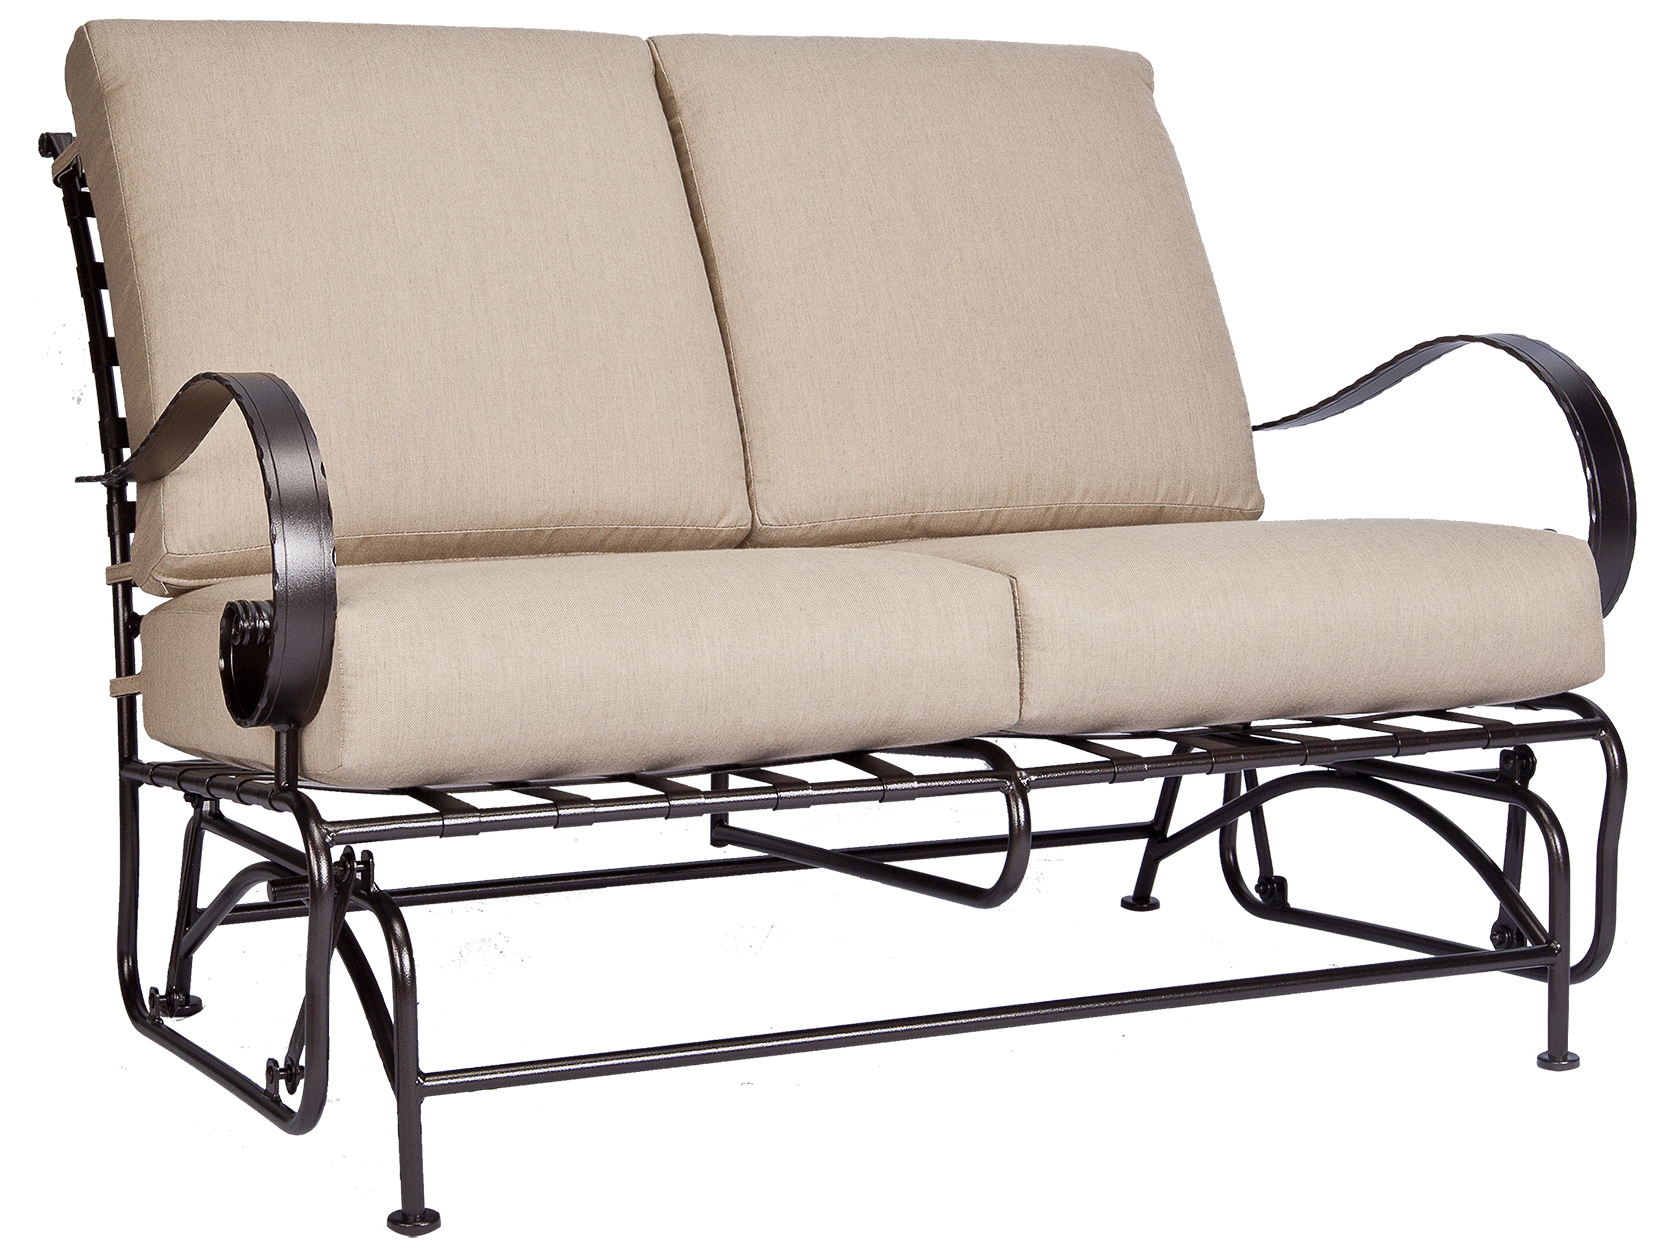 Ow Lee Classico Wide Arms Wrought Iron Loveseat Glider